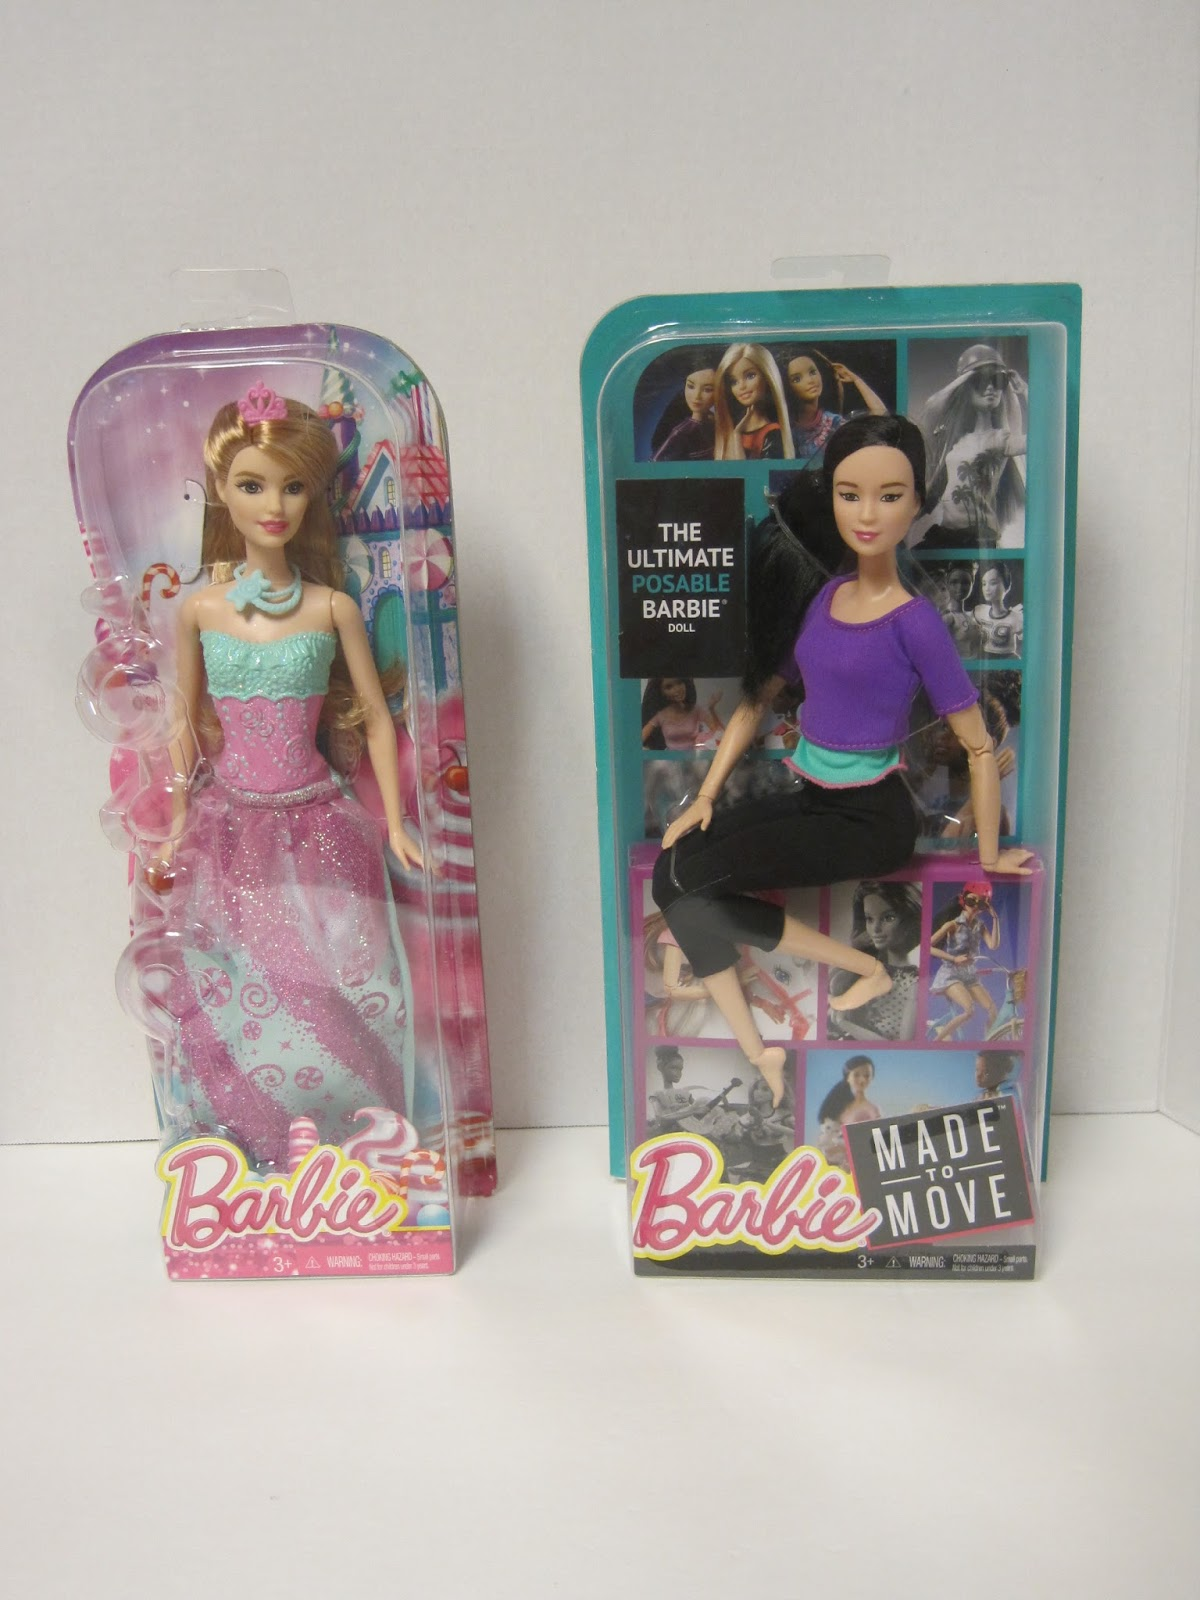 from Donald barbie the princess naked